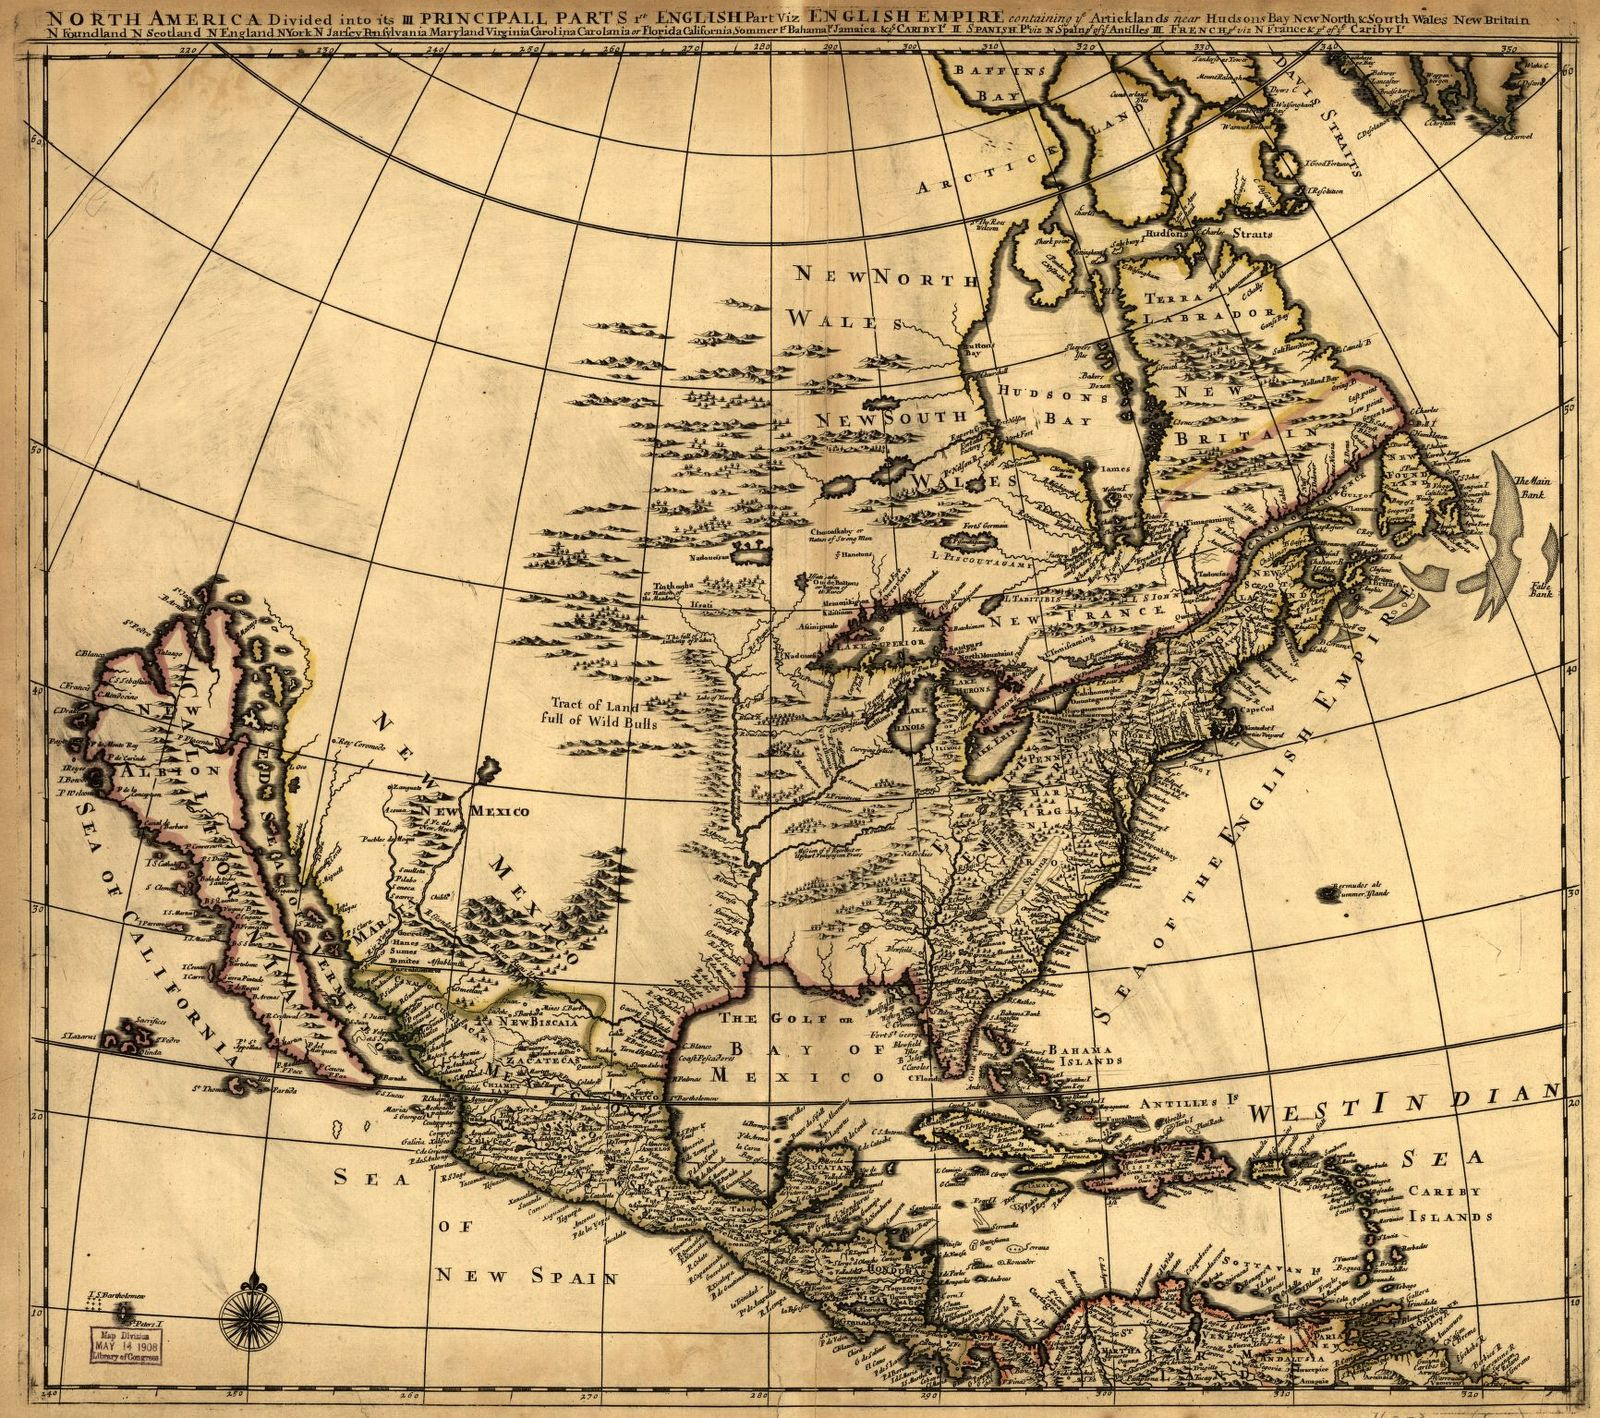 North America divided into its III principall [sic] parts.